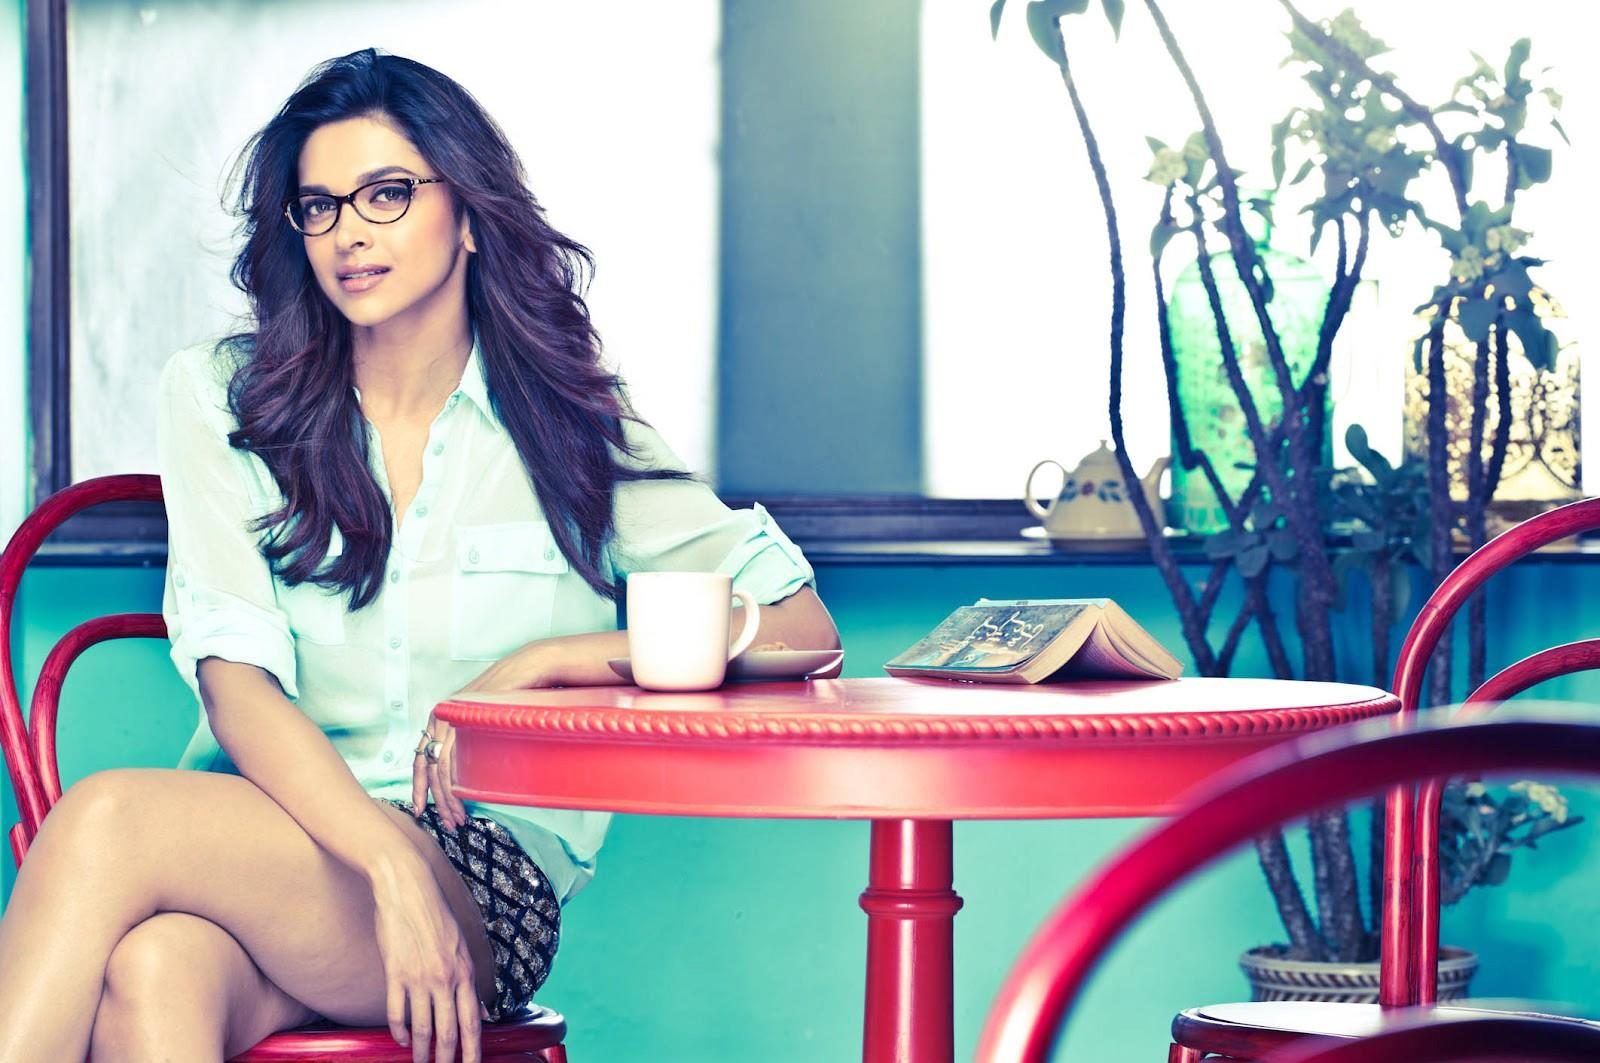 deepika padukone hot hd wallpapers